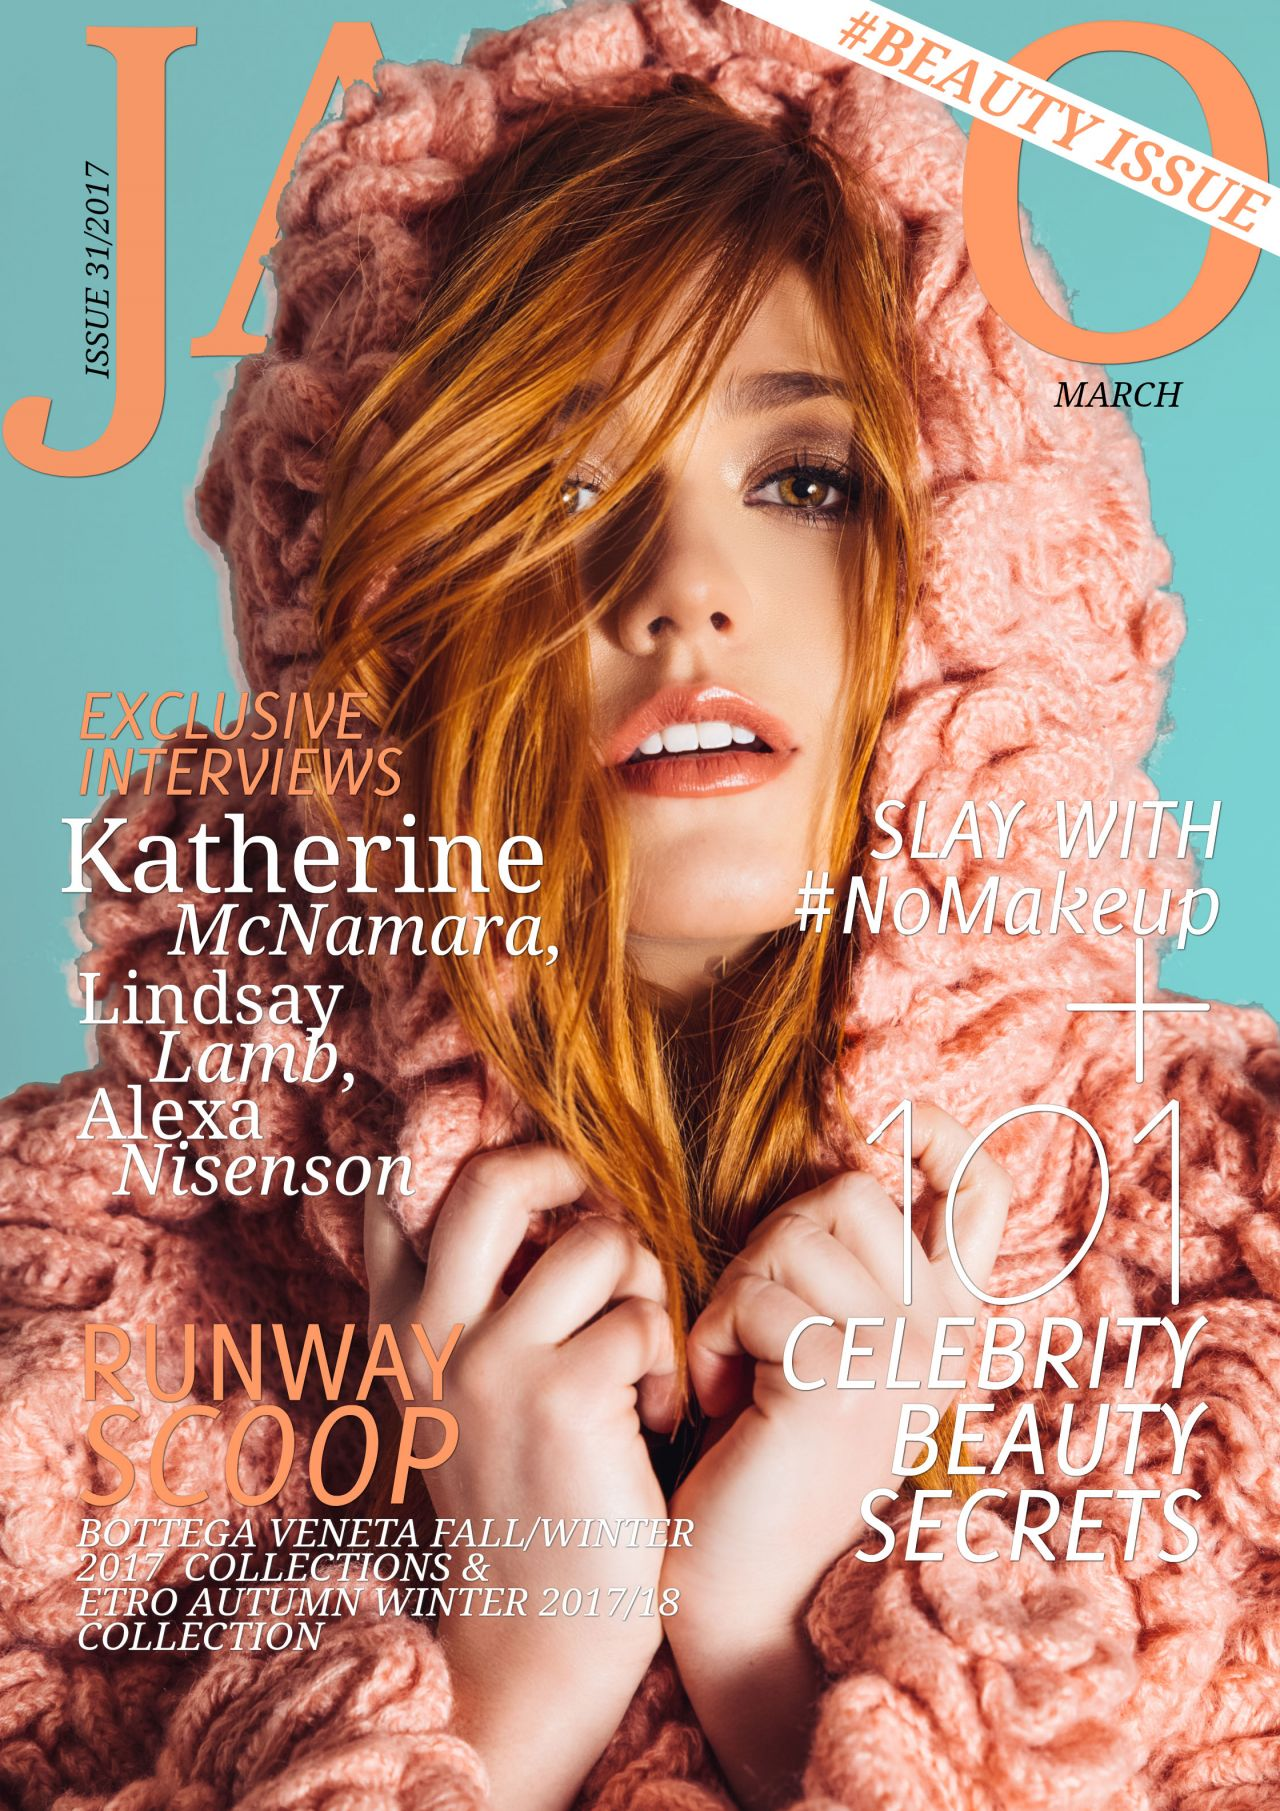 March 2017 Popsugar Must Have Box Review: Jamo Magazine March 2017 Cover And Photo